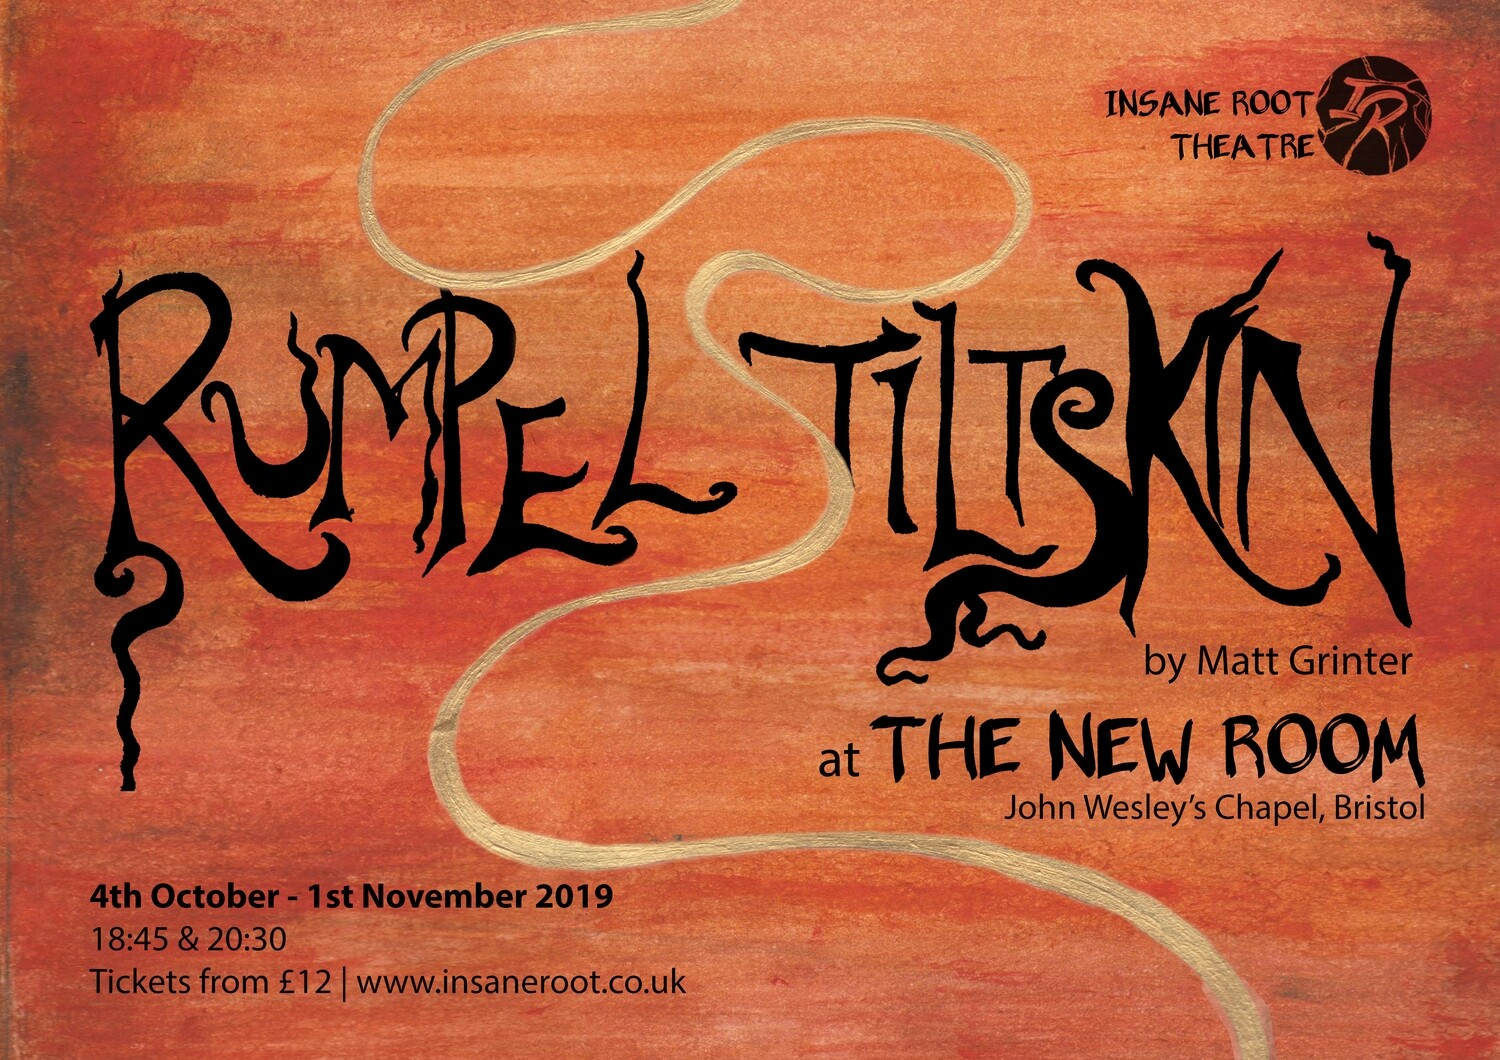 Logo for Insane Root's immersive performance at the New Room Bristol 4th October-1st November 2019